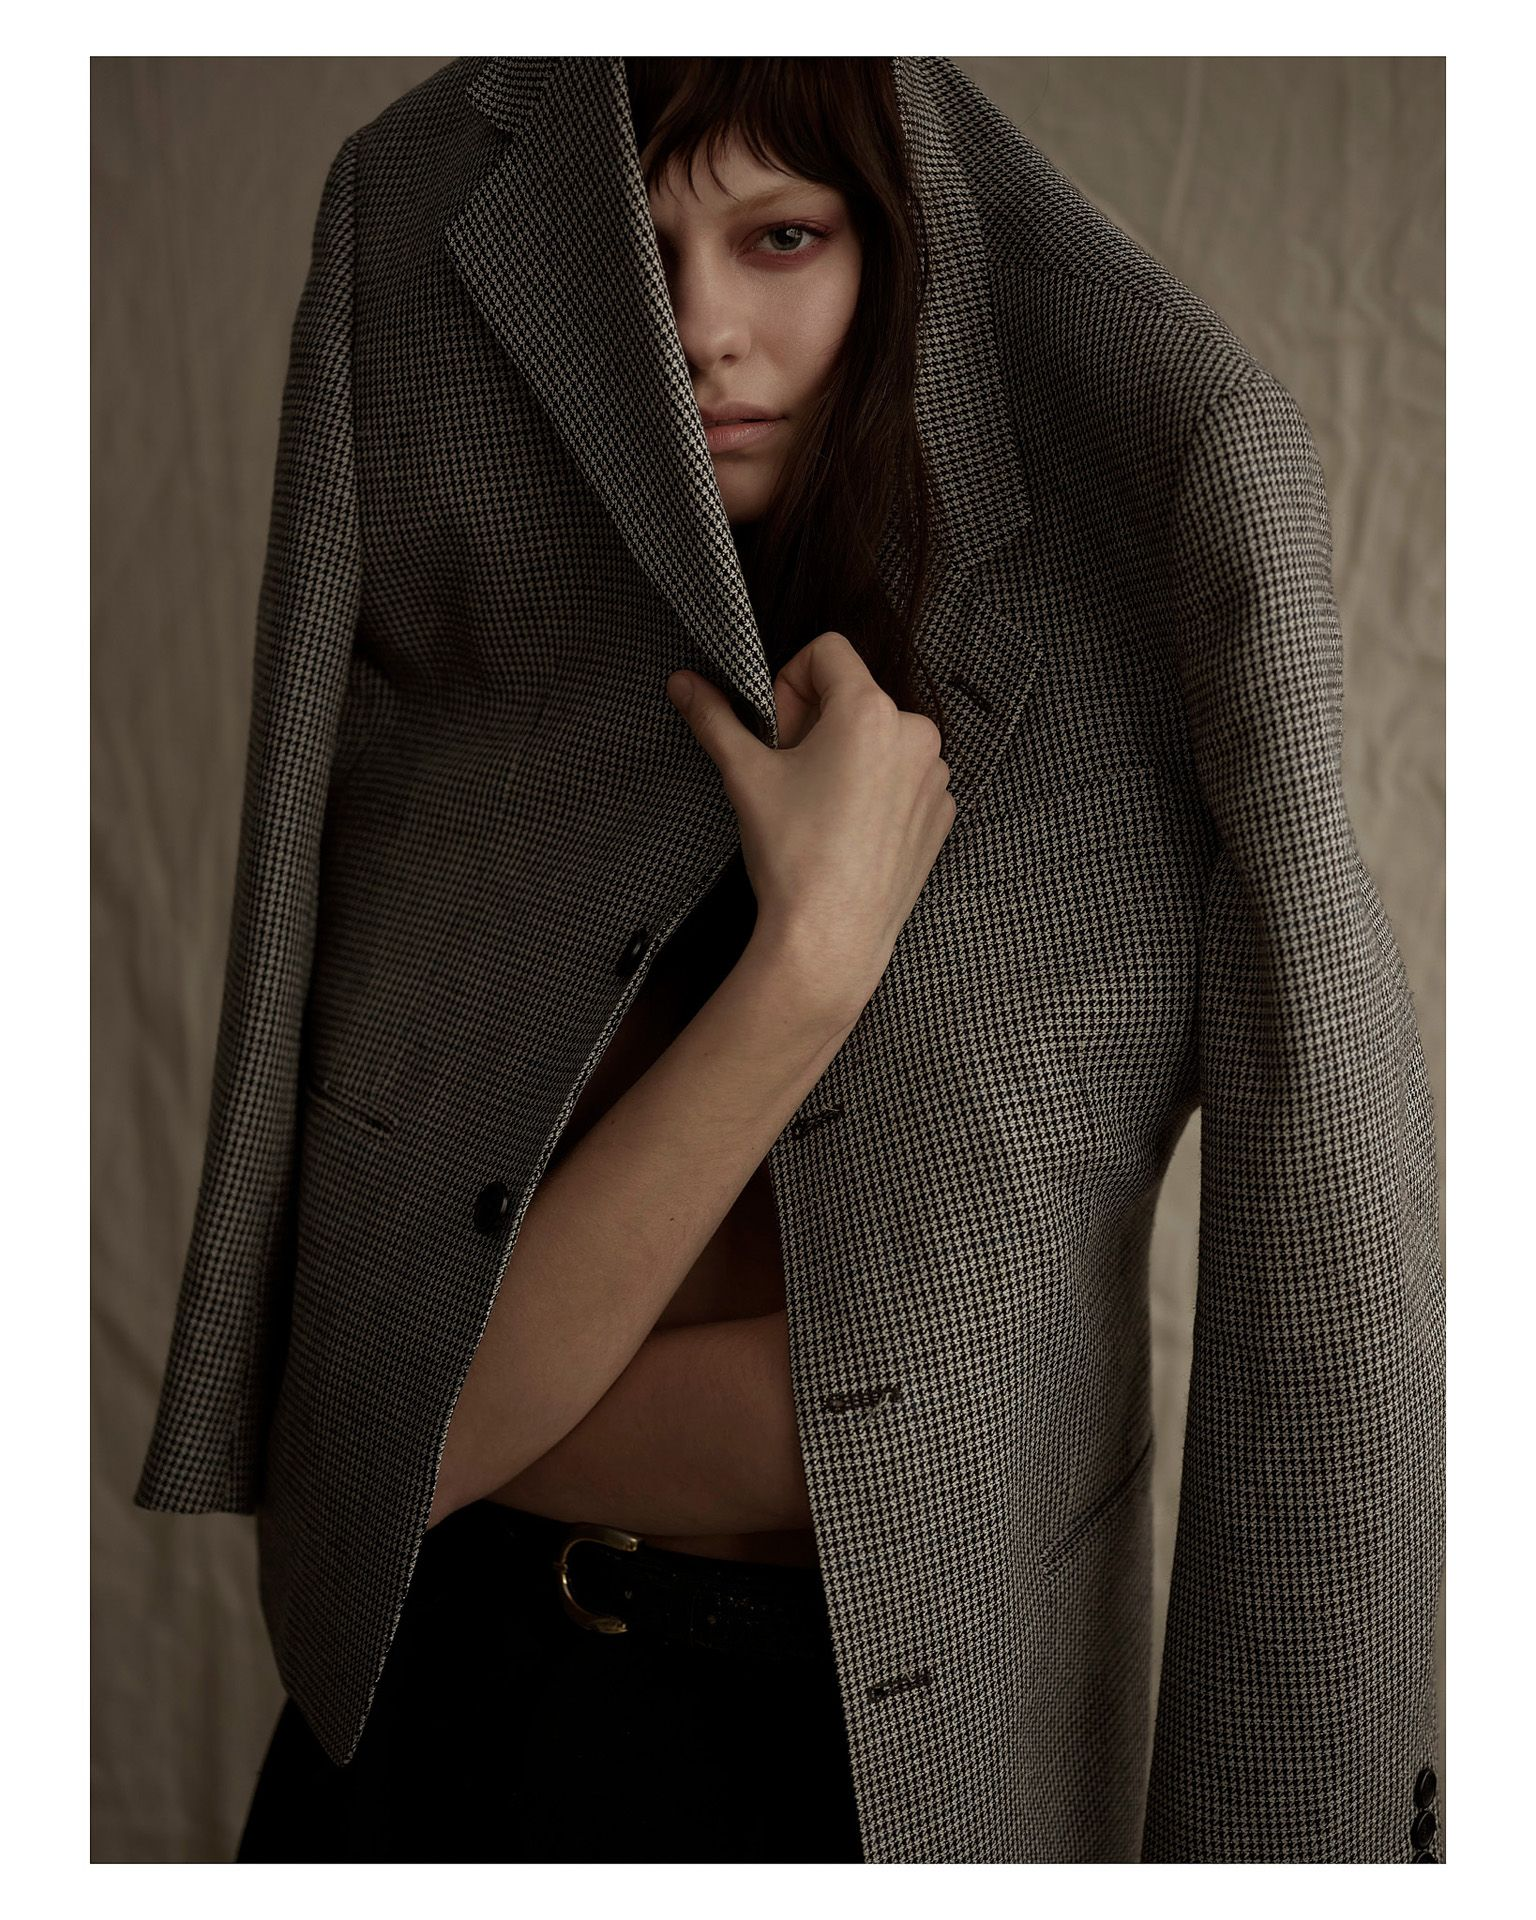 woman wearing black suit pants and checkered oversized suit jacket over her head looking at camera by Maxyme G Delisle for Mariane